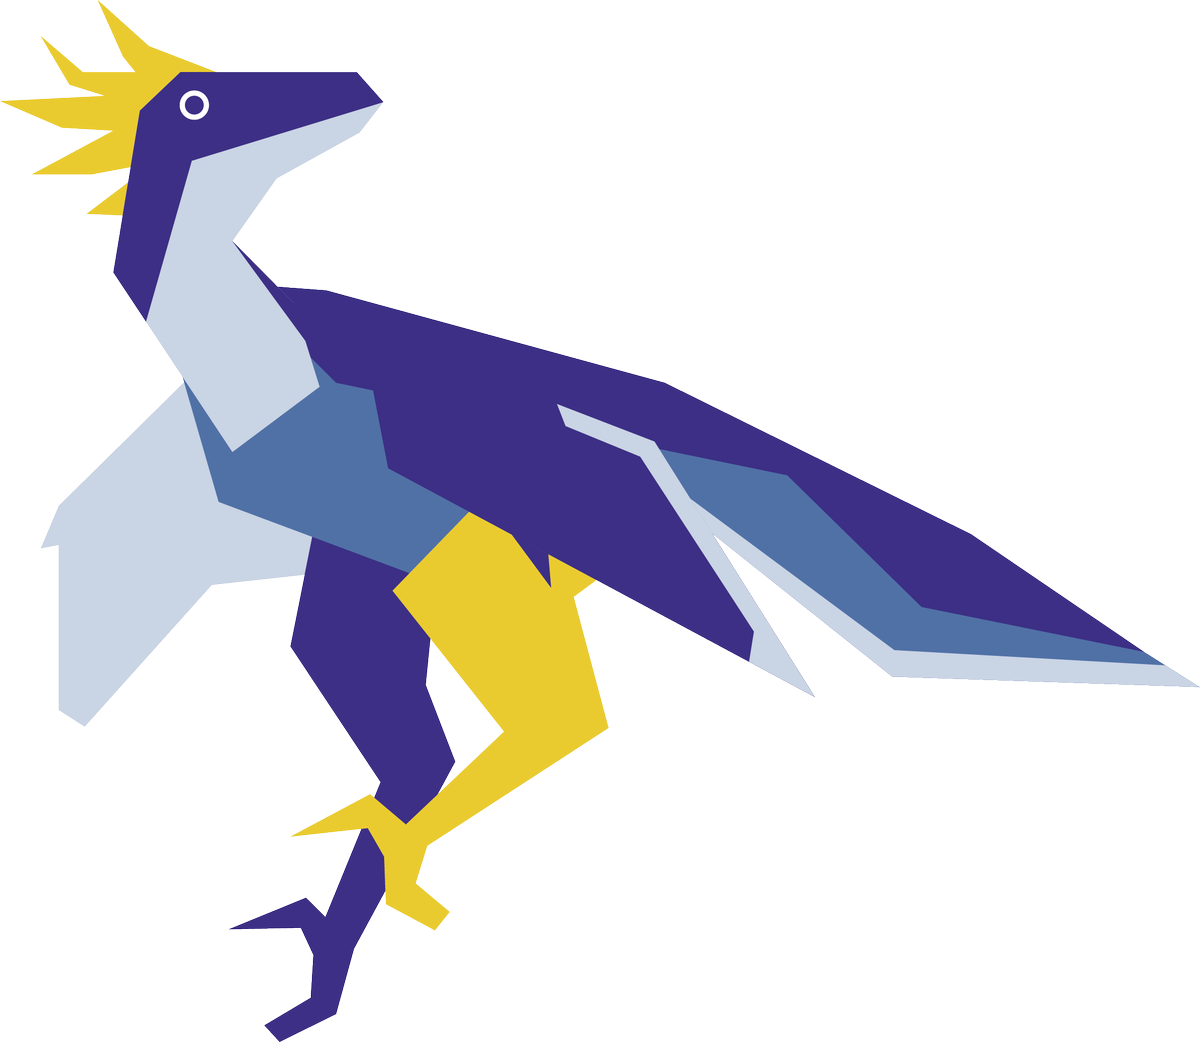 Velociraptor vector art. Fluffy alien cyclops bird